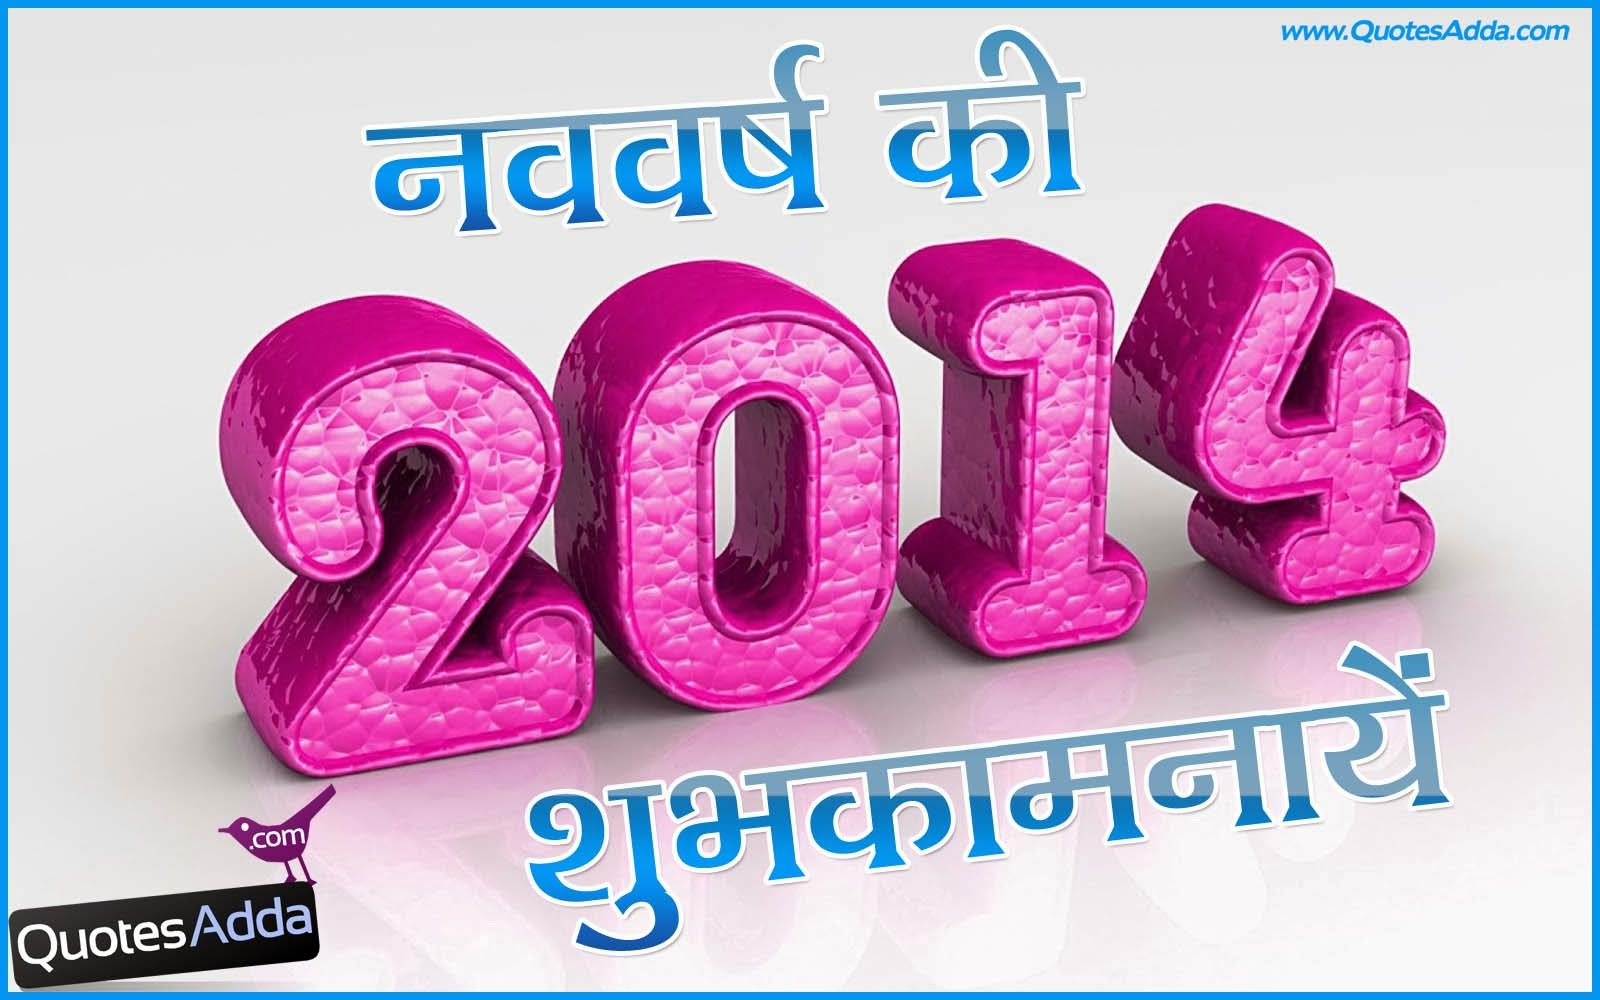 New Year Shayari in Hindi  Happy New Year Greetings in Hindi Font. 1600 x 1000.Happy New Year Quotes In Hindi Font